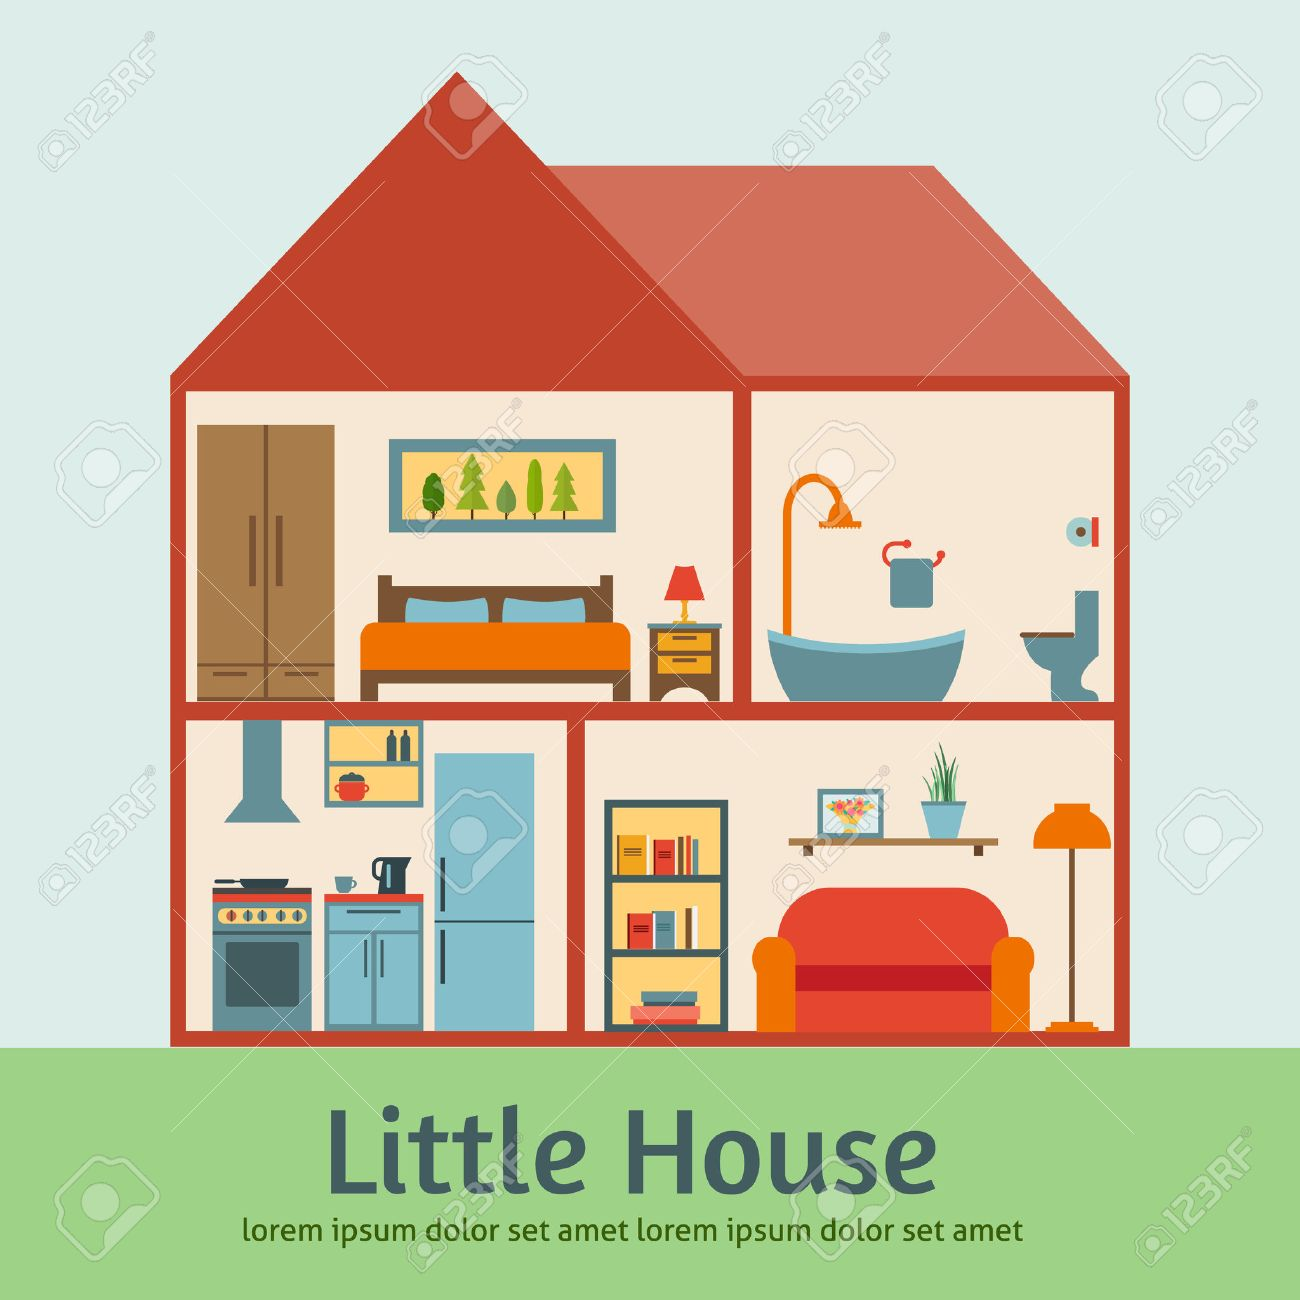 All rooms in the house rooms of homes vector art image illustration - Cutaway House In Cut Detailed Modern House Interior Rooms With Furniture Flat